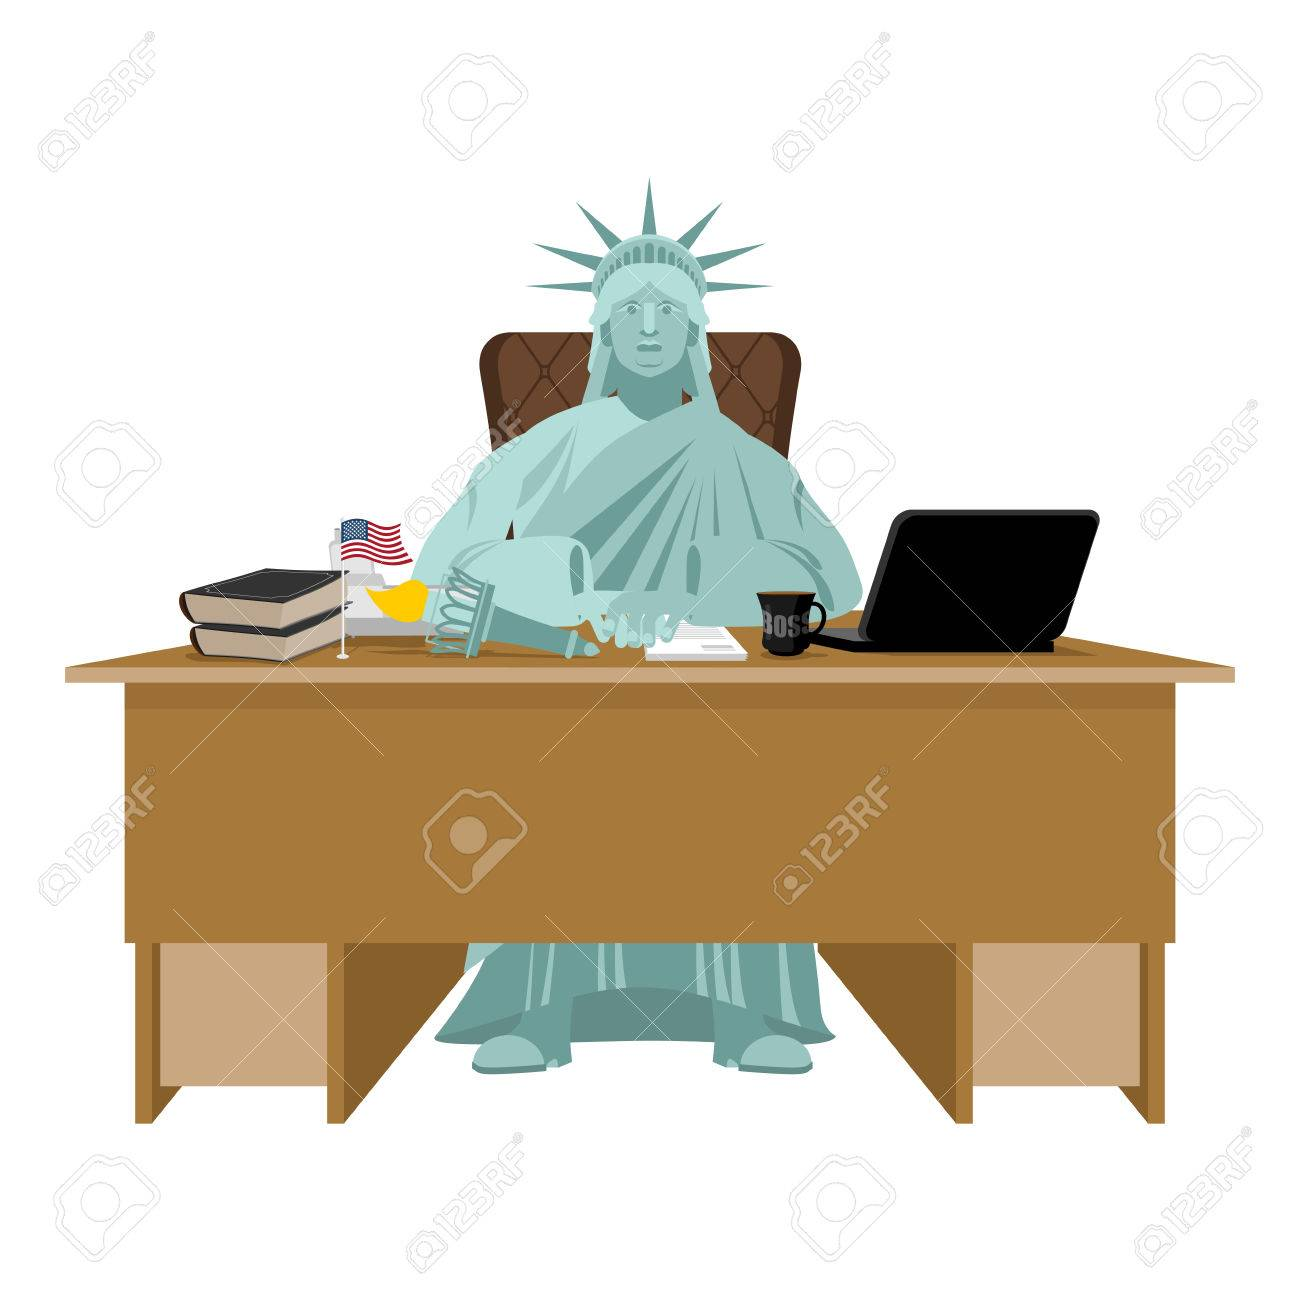 Statue of liberty sitting in office american boss at table statue of liberty sitting in office american boss at table businessman from united states biocorpaavc